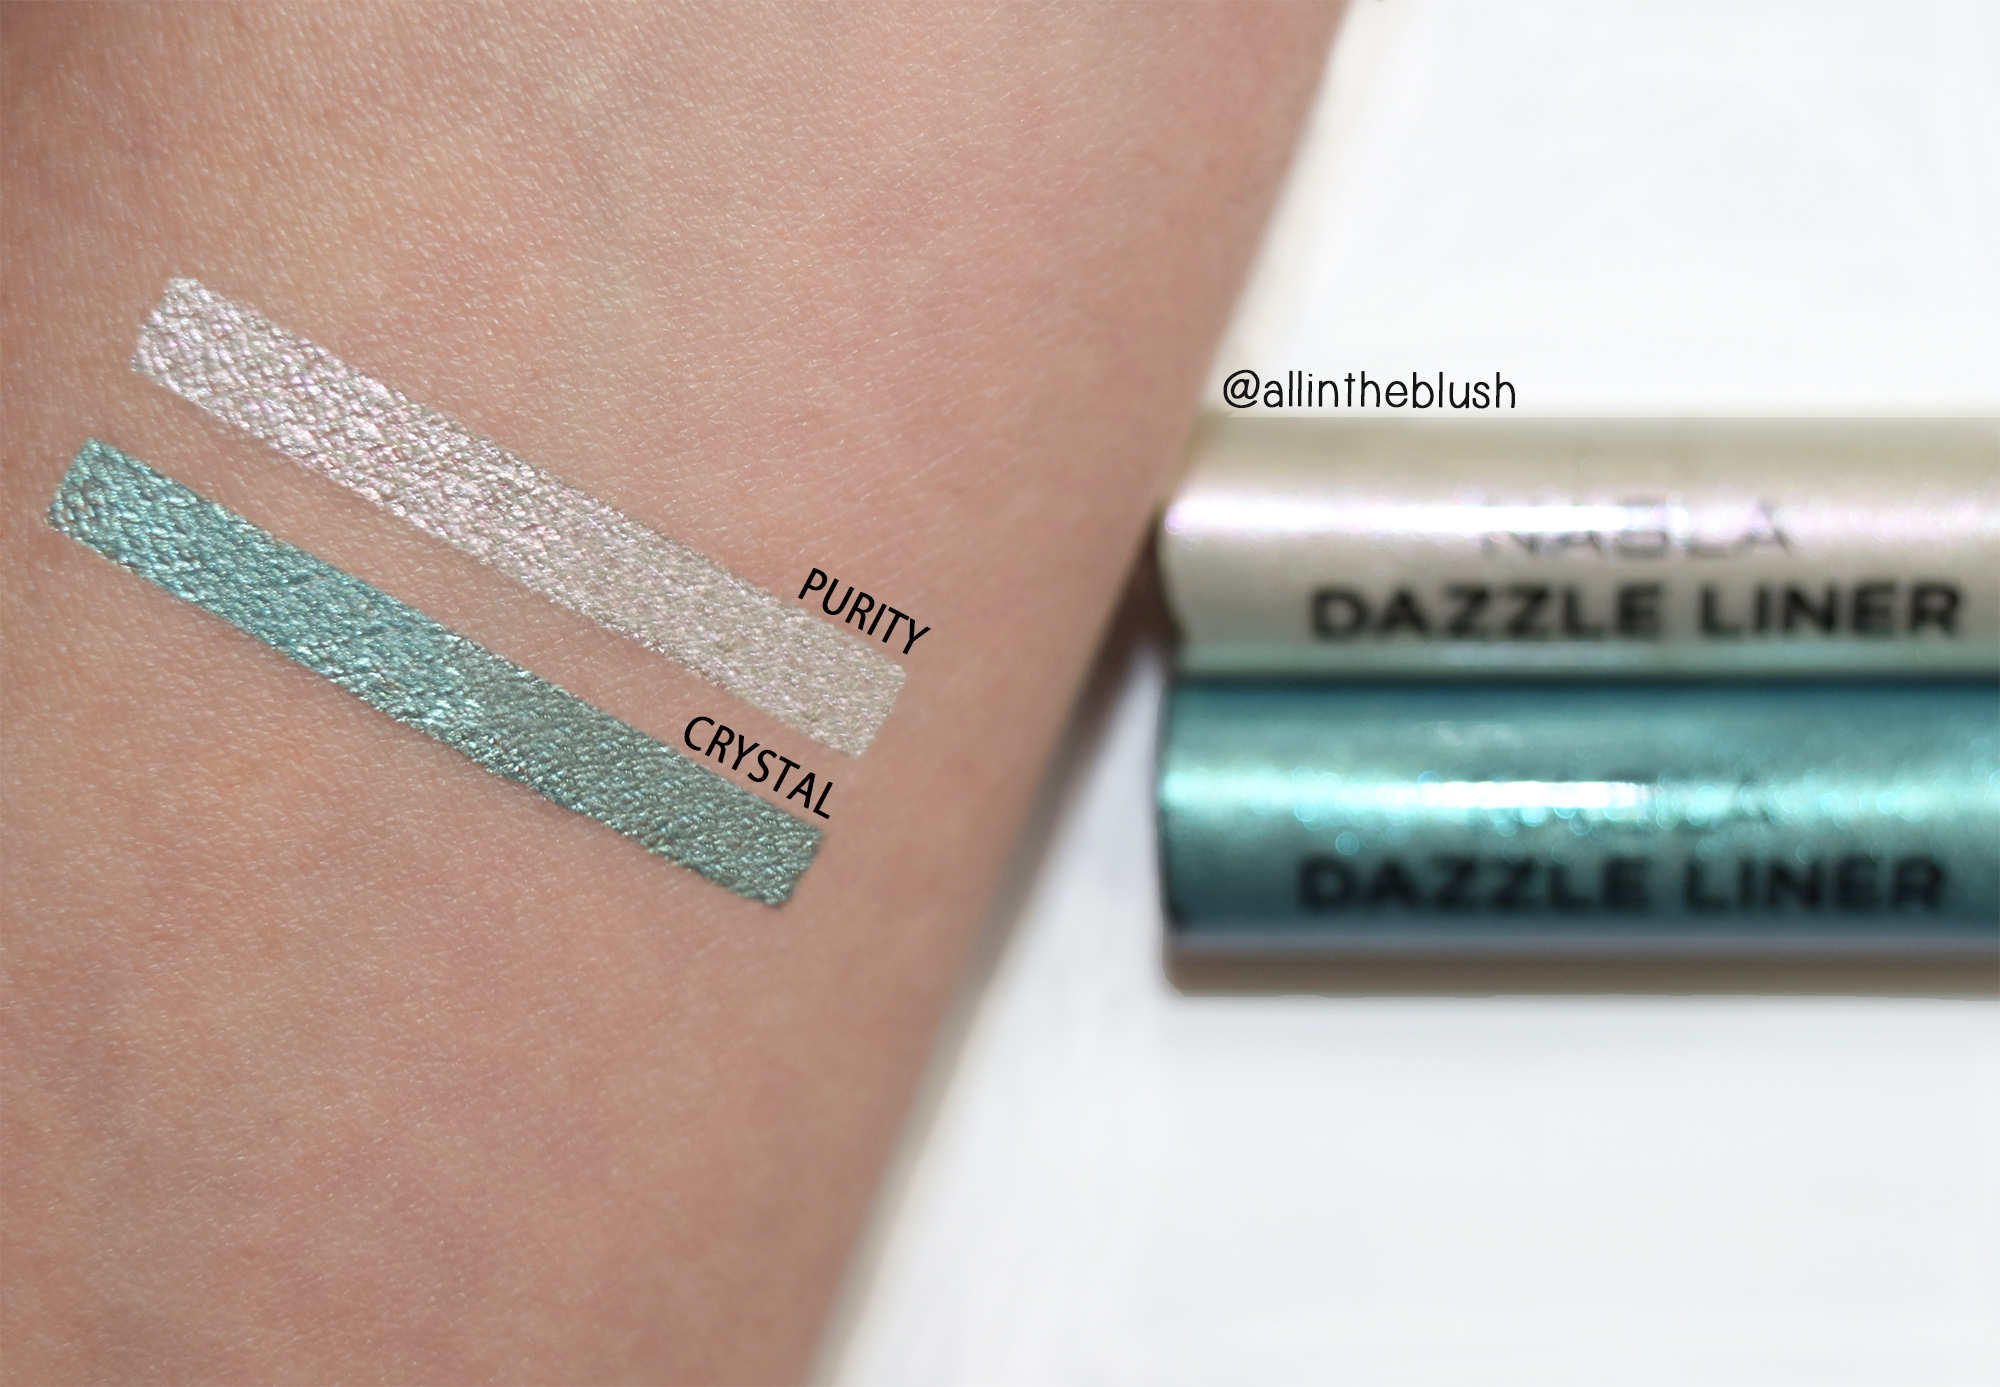 Nabla Freedomination Dazzle Liner Swatches